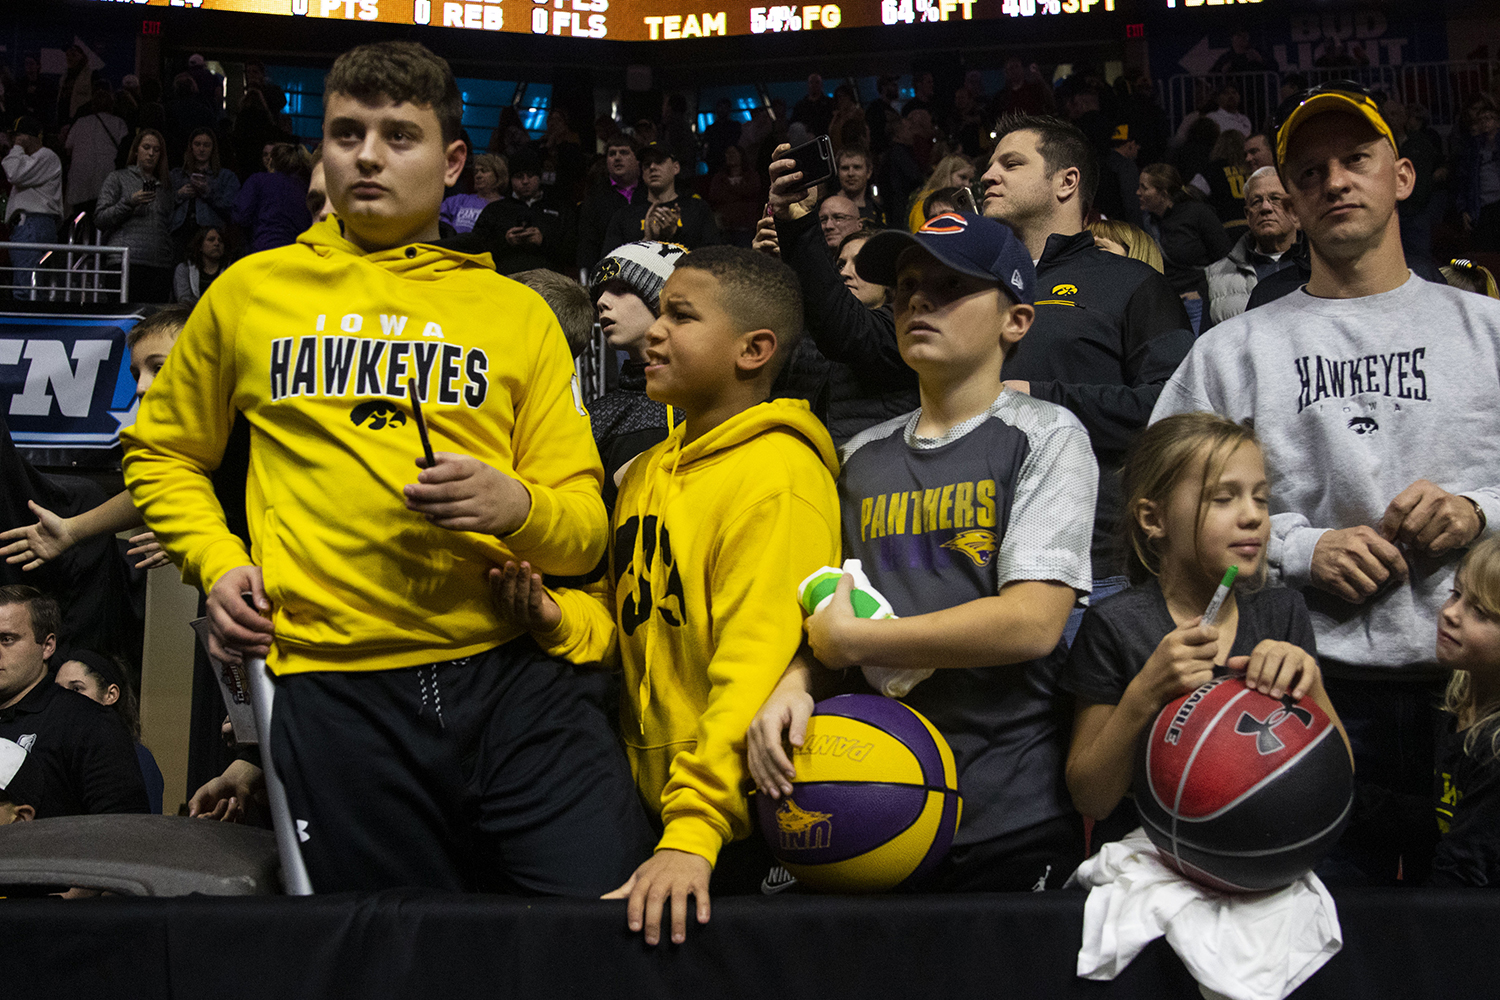 Iowa+fans+wait+to+meet+the+team+during+the+Iowa%2FUNI+men%27s+basketball+game+at+Wells+Fargo+Arena+in+Des+Moines+on+Saturday%2C+Dec.+15%2C+2018.+The+Hawkeyes+defeated+the+Panthers%2C+77-54.+